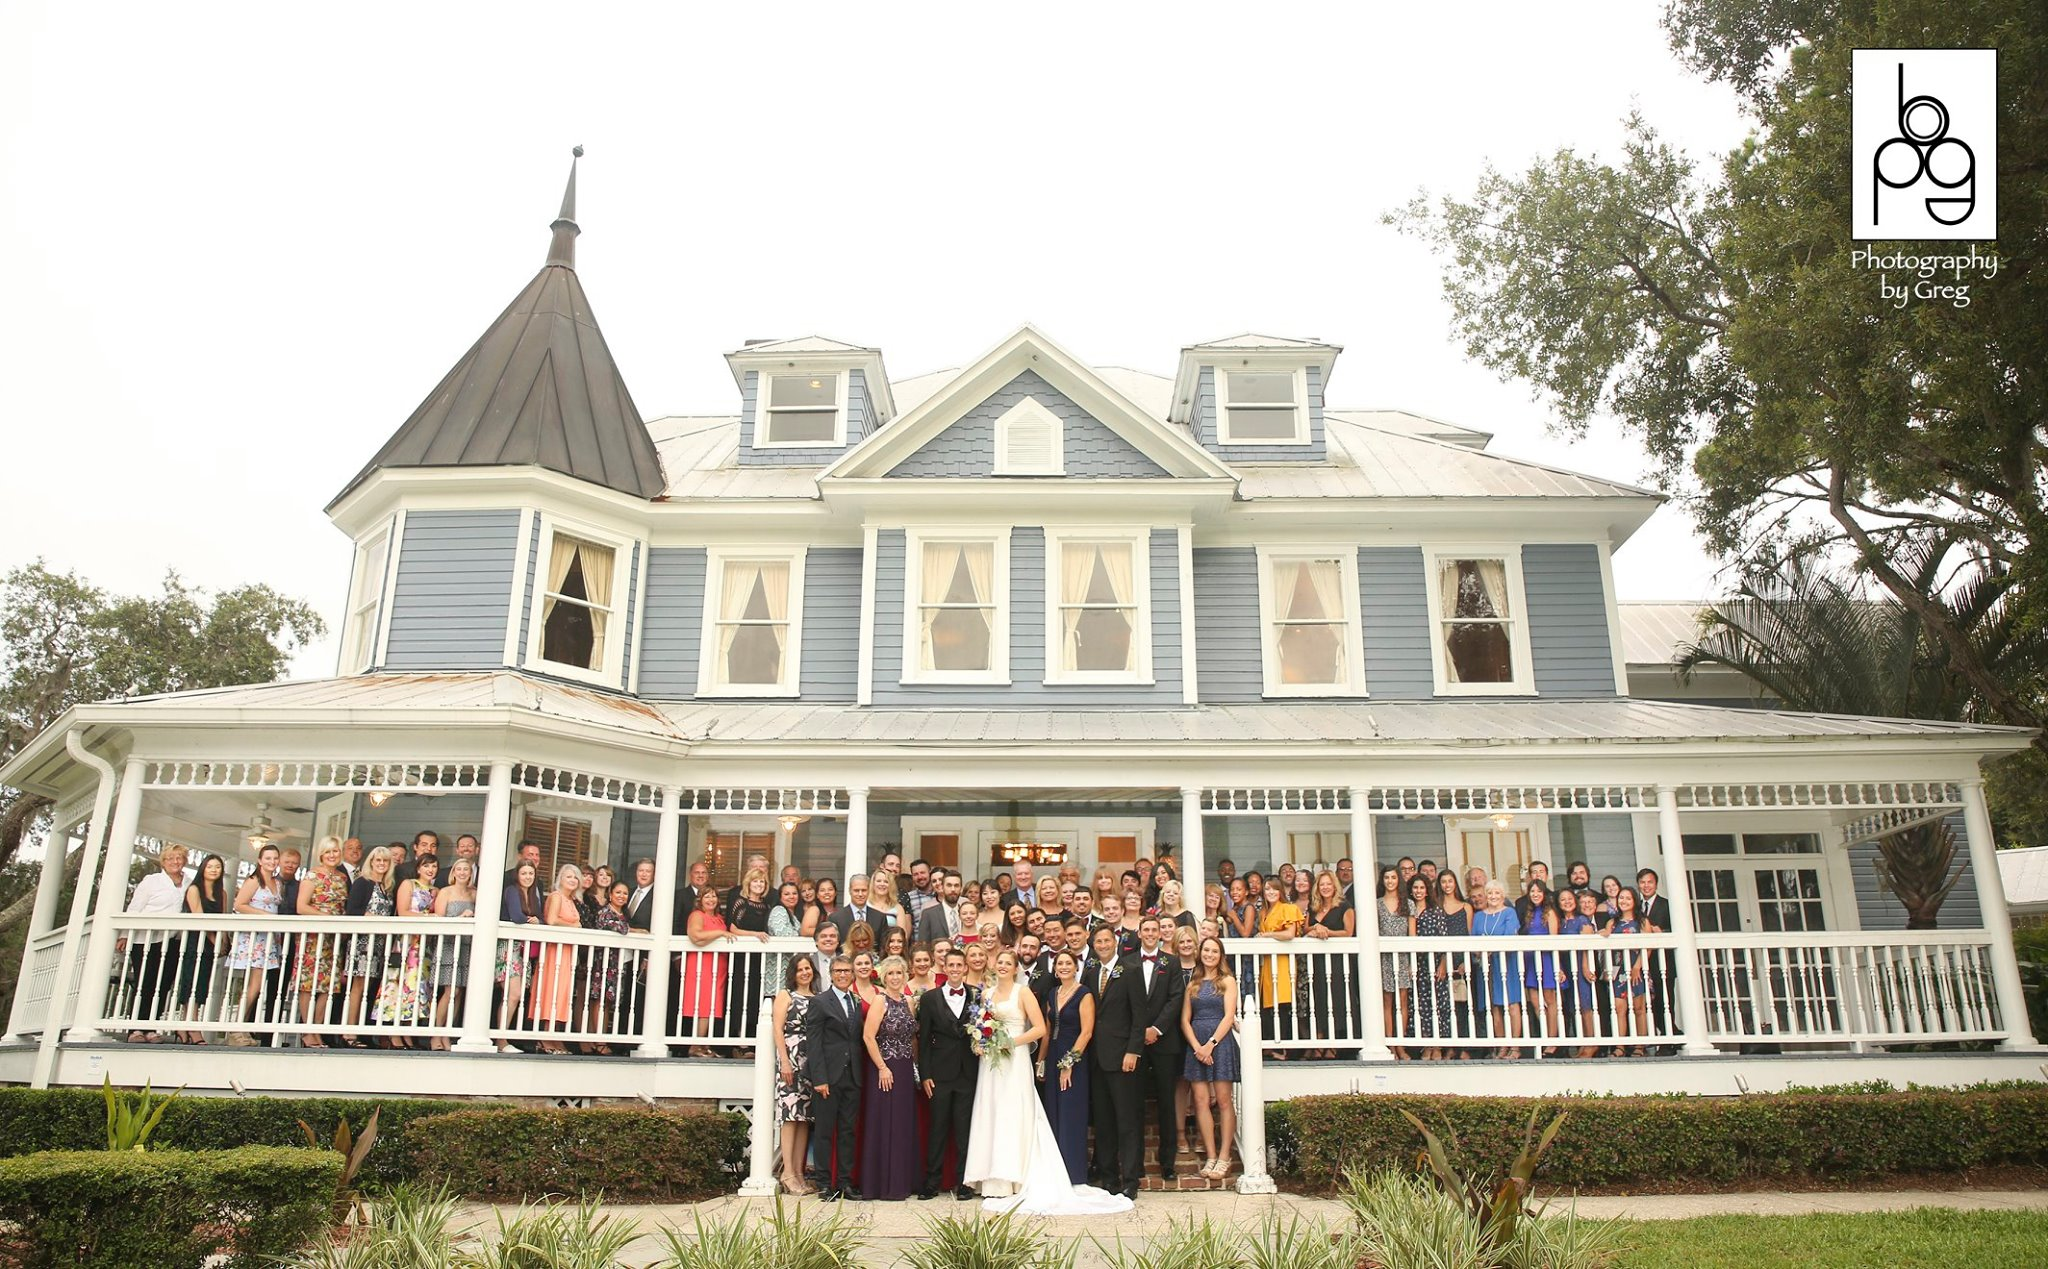 P.S. I Love You Productions, all the guests and bridal party standing on the porch of a house